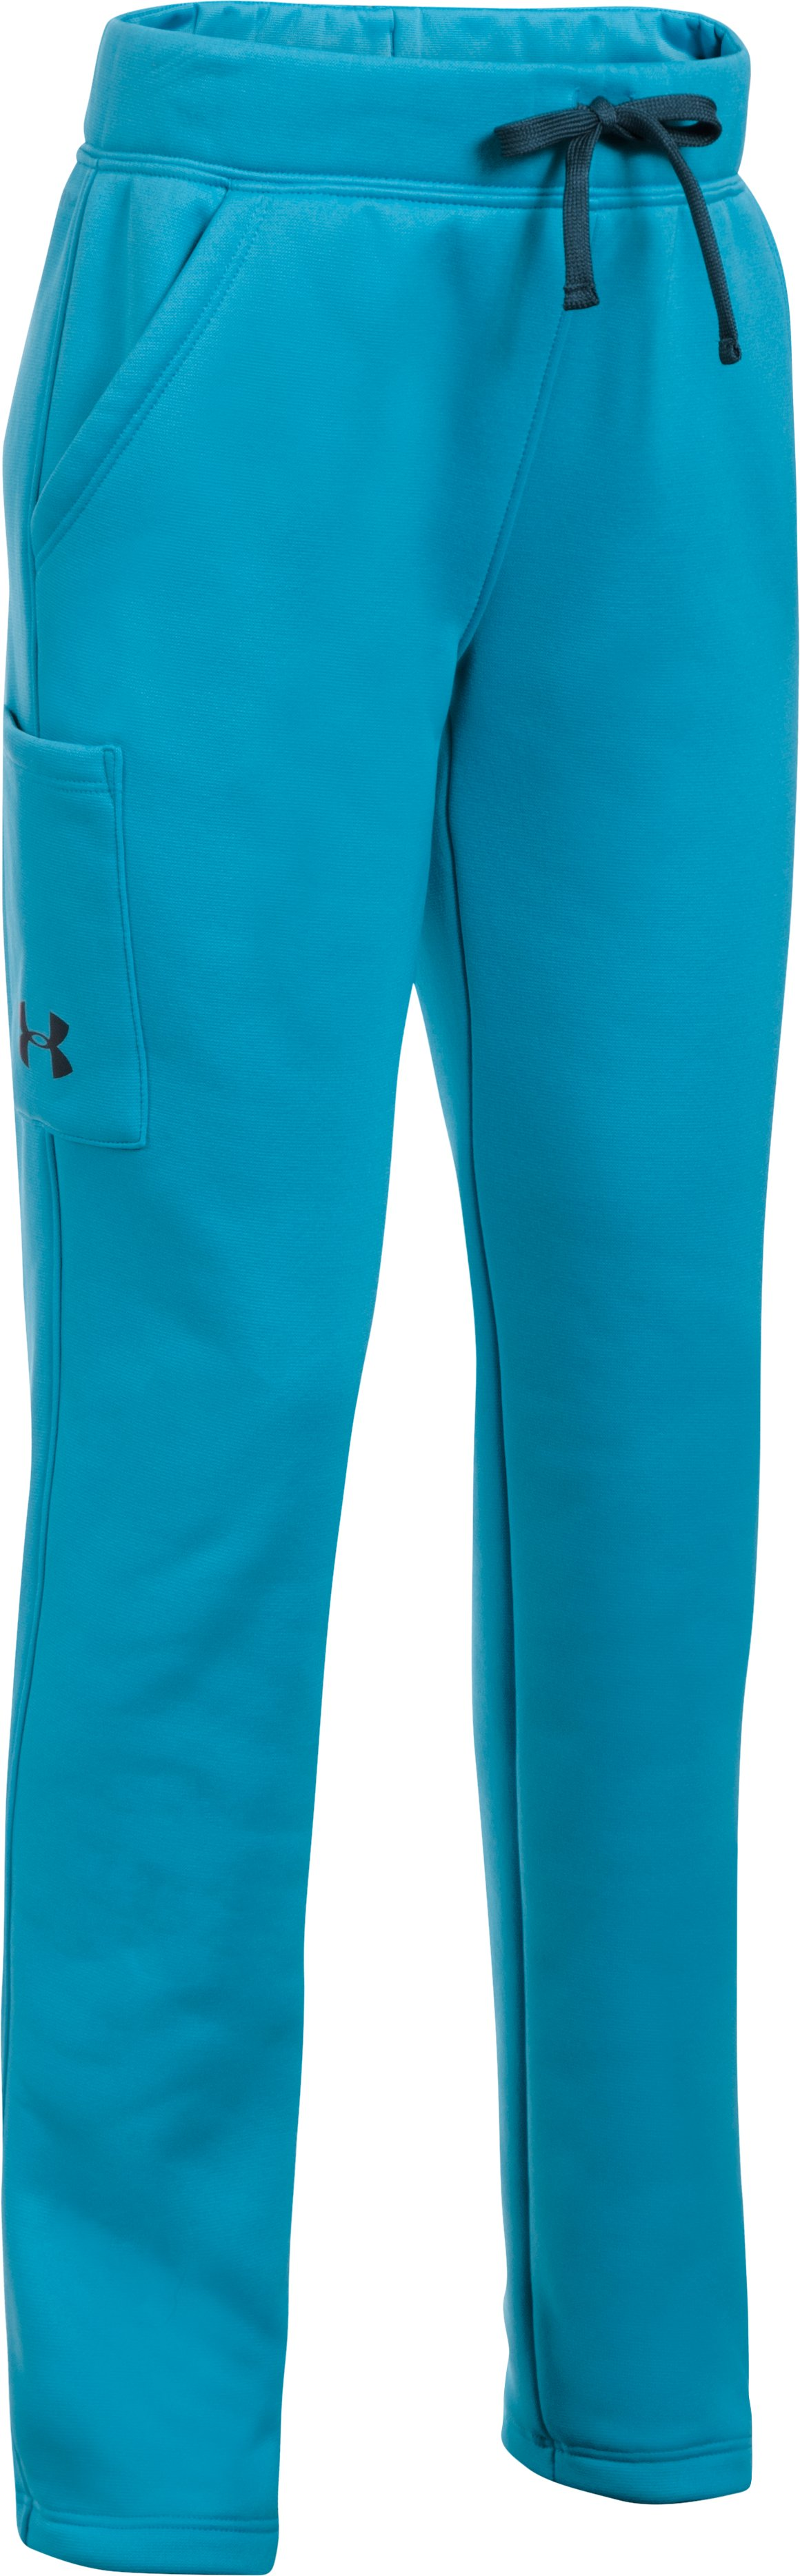 Girls' Armour Fleece® Pants, BLUE SHIFT